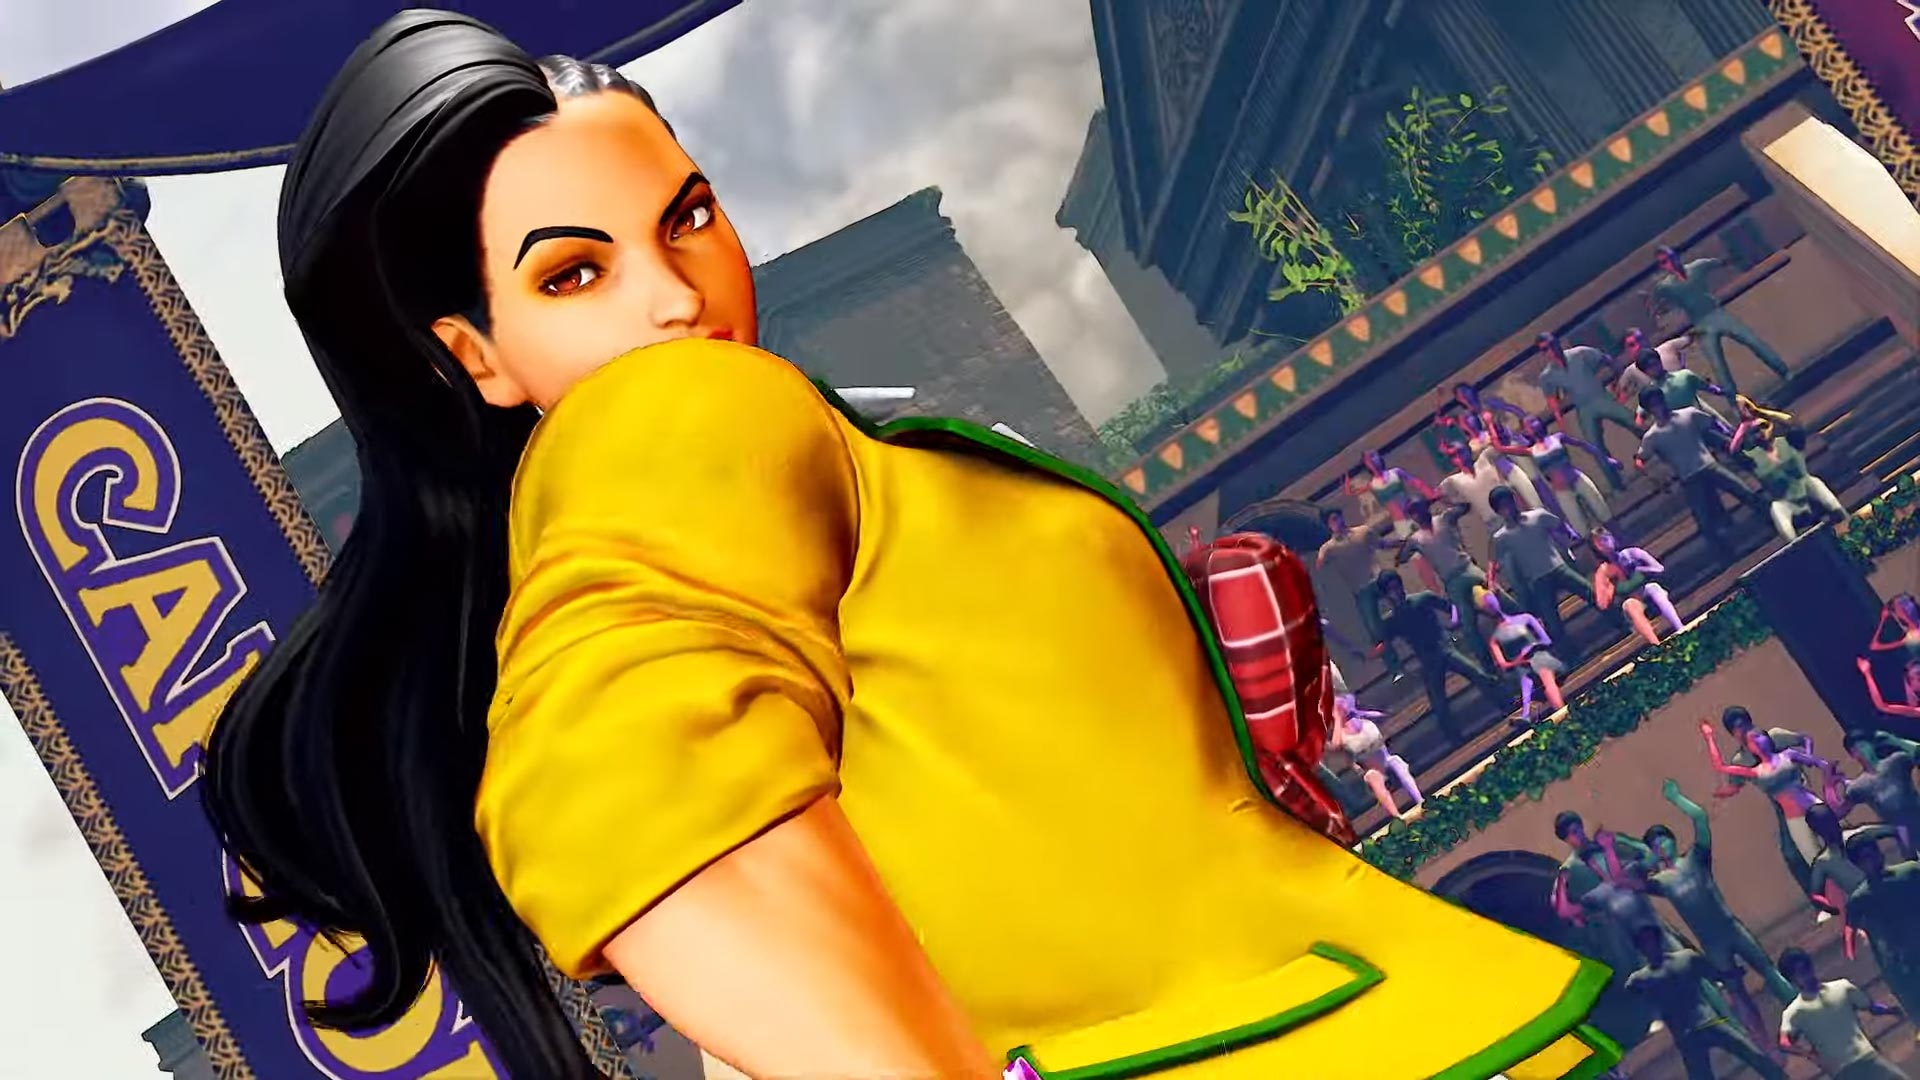 Street Fighter 5: Champion Edition 2020 Capcom Pro Tour DLC 3 out of 5 image gallery